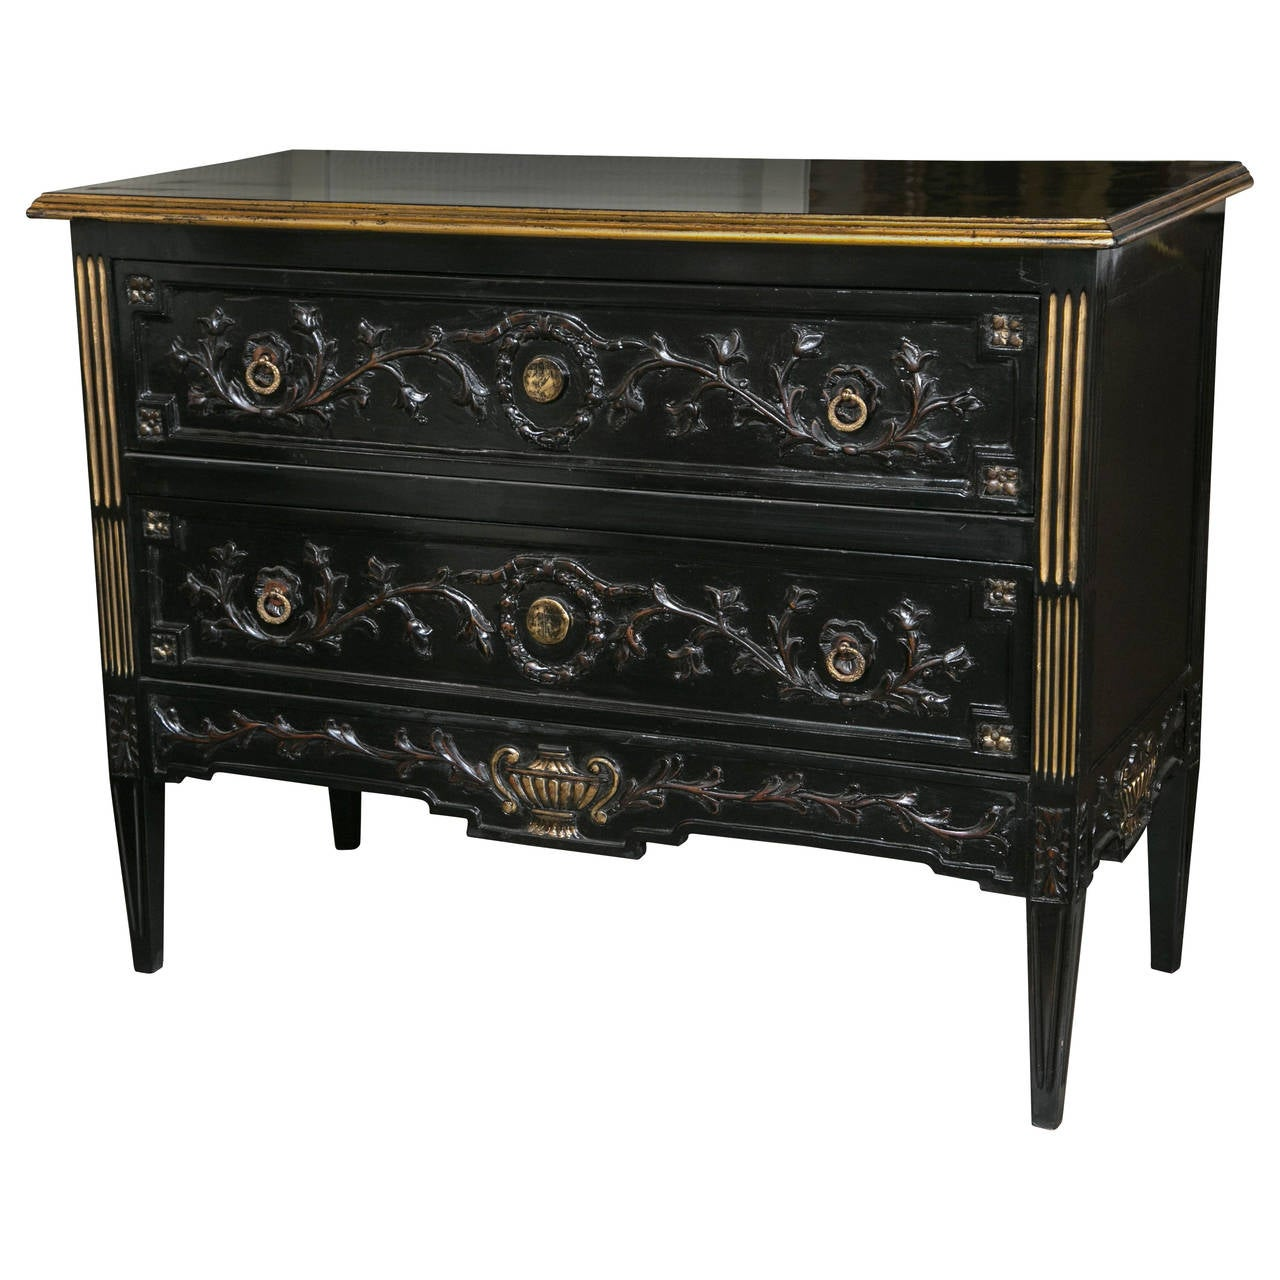 Neoclassical Style Ebonized Highly Carved Commode in the Style of Maison Jansen